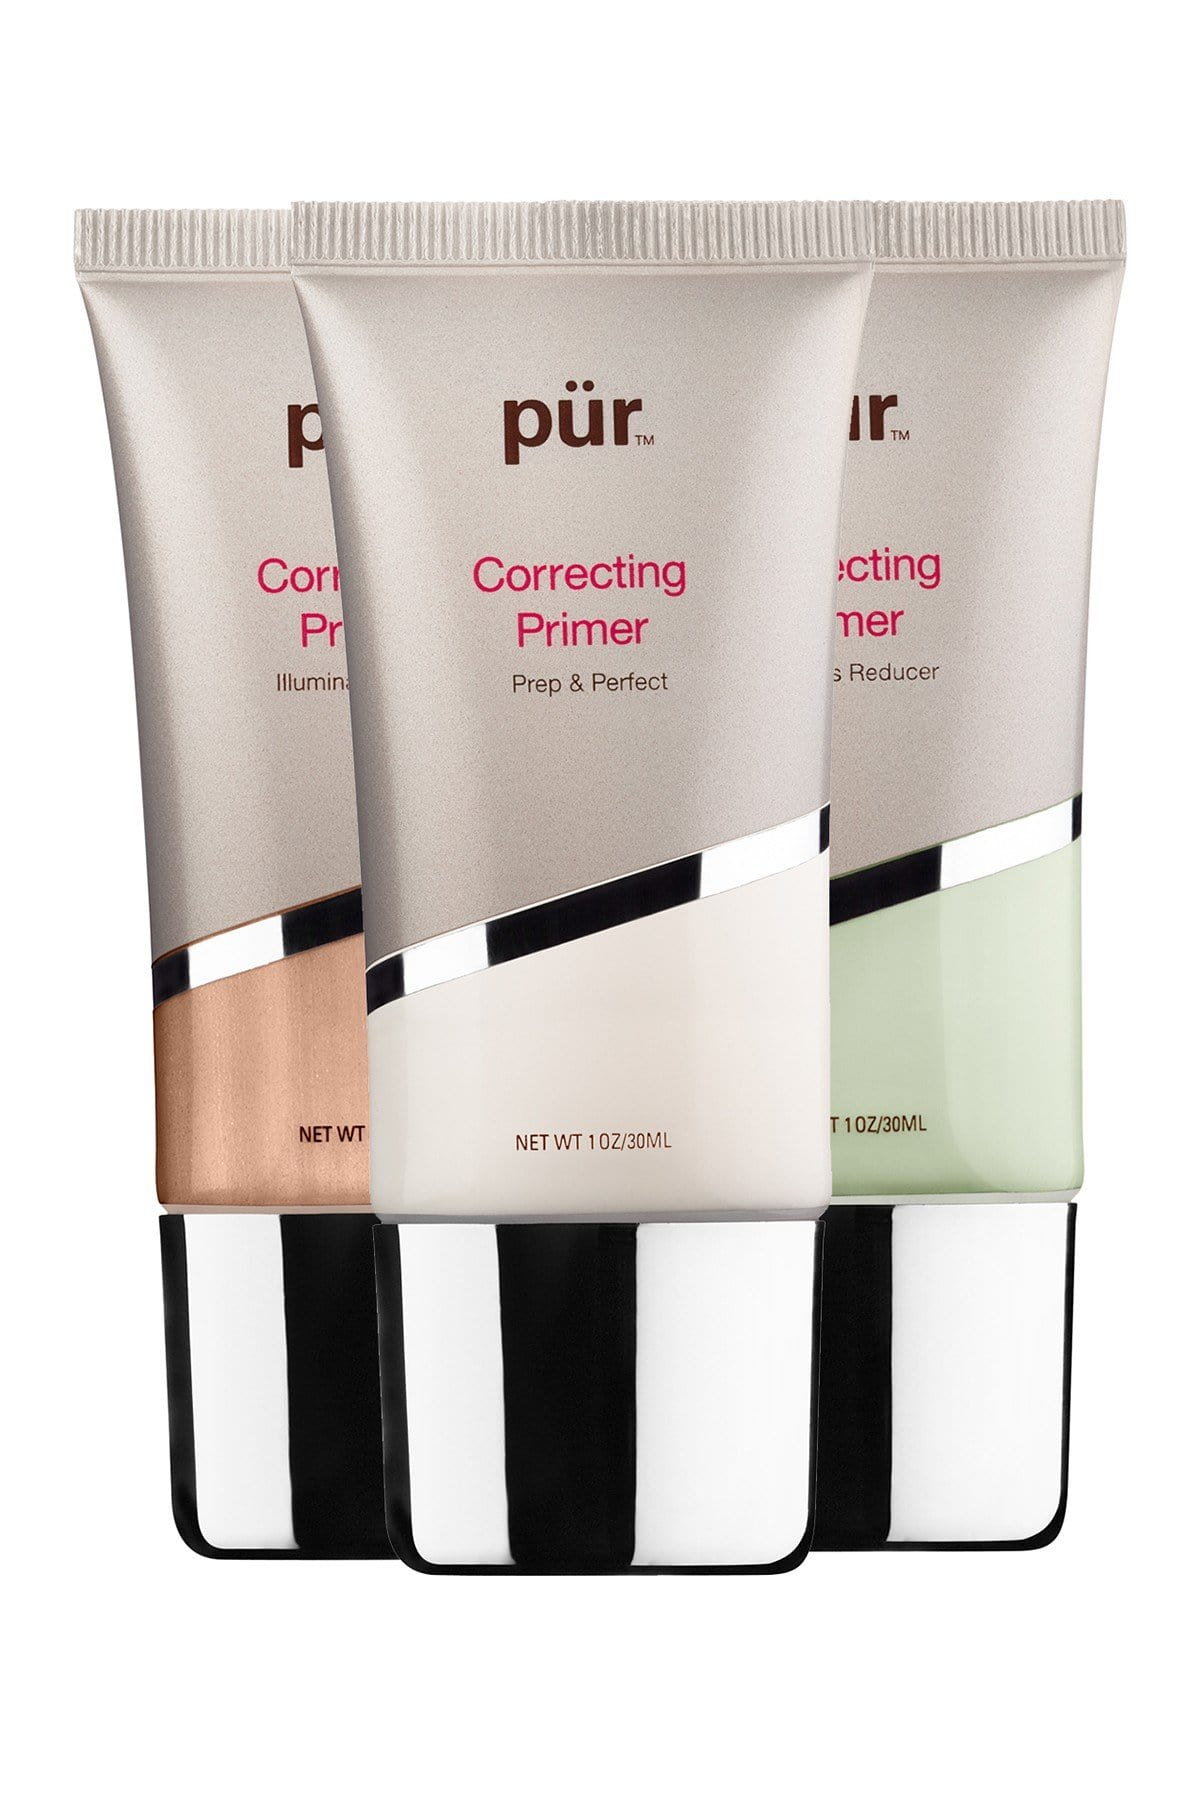 PÜR Correcting Primer Prep & Perfect 30ml 1stk